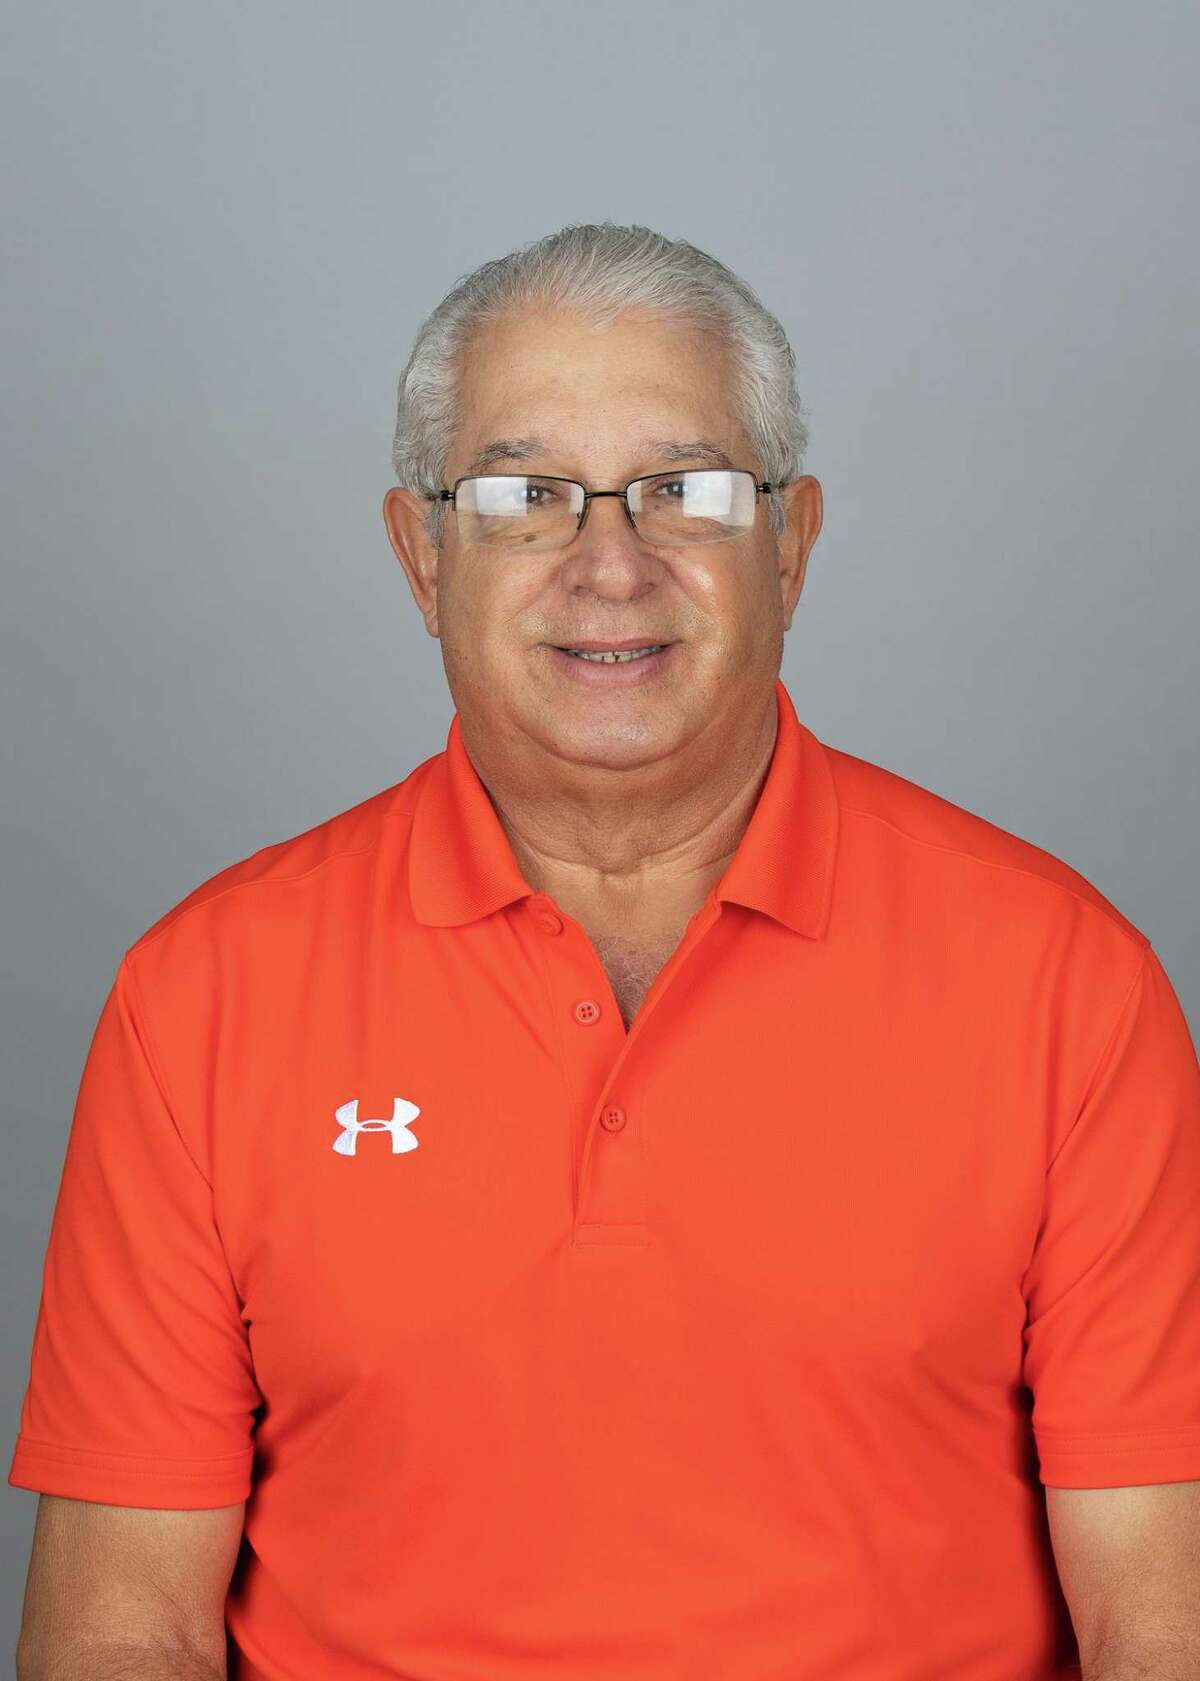 Giants director of Dominican Republic operations Pablo Peguero died Wednesday at the age of 68.